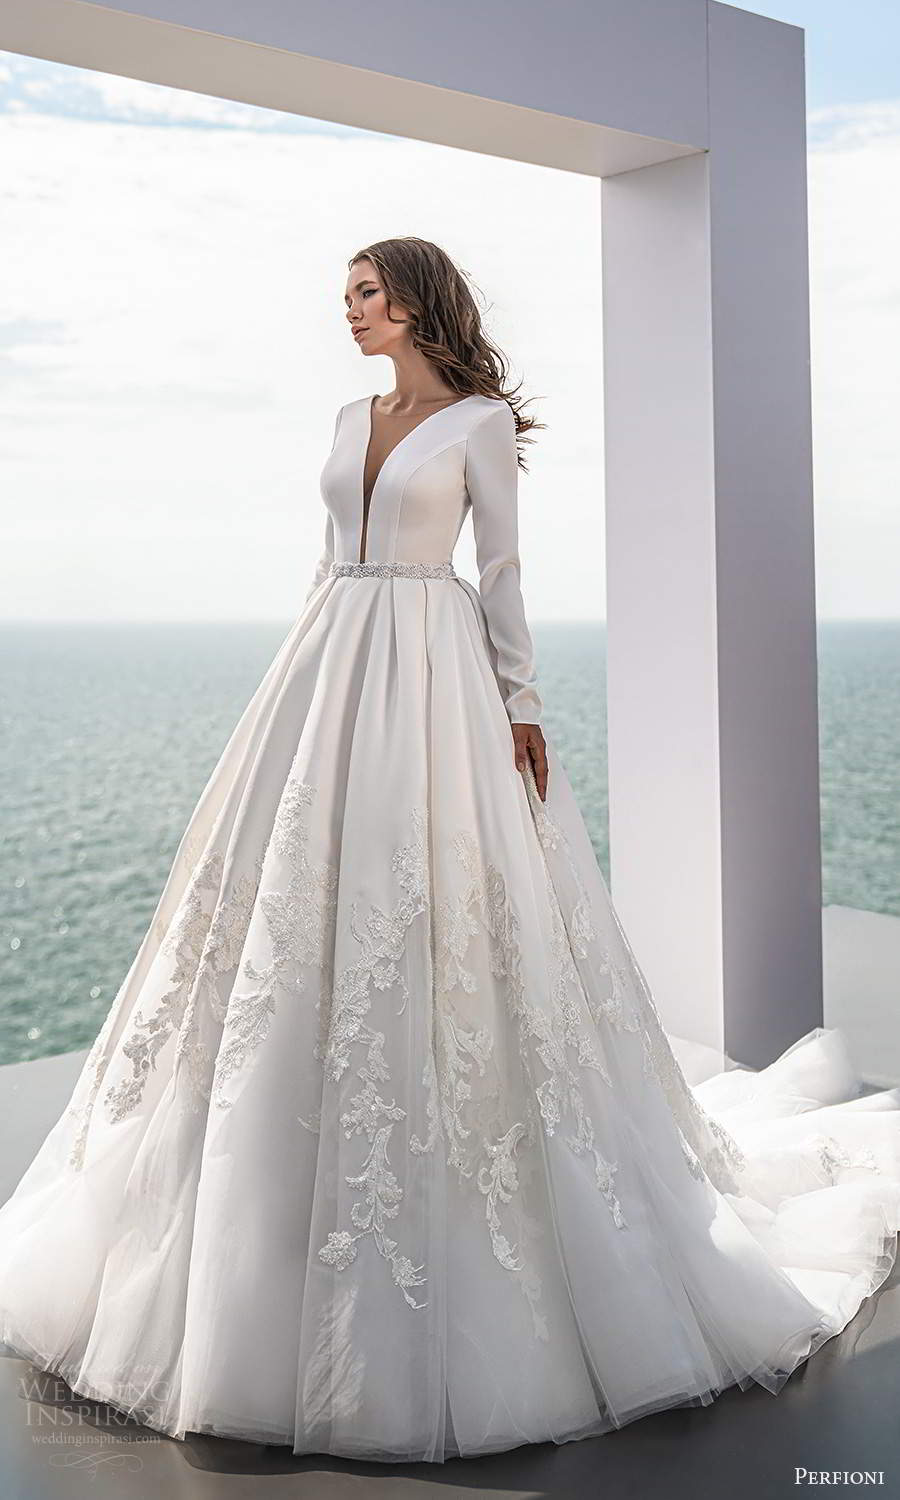 perfioni 2021 bridal long sleeves plunging v neckline clean bodice embellished skirt a line ball gown wedding dress chapel train (13) mv